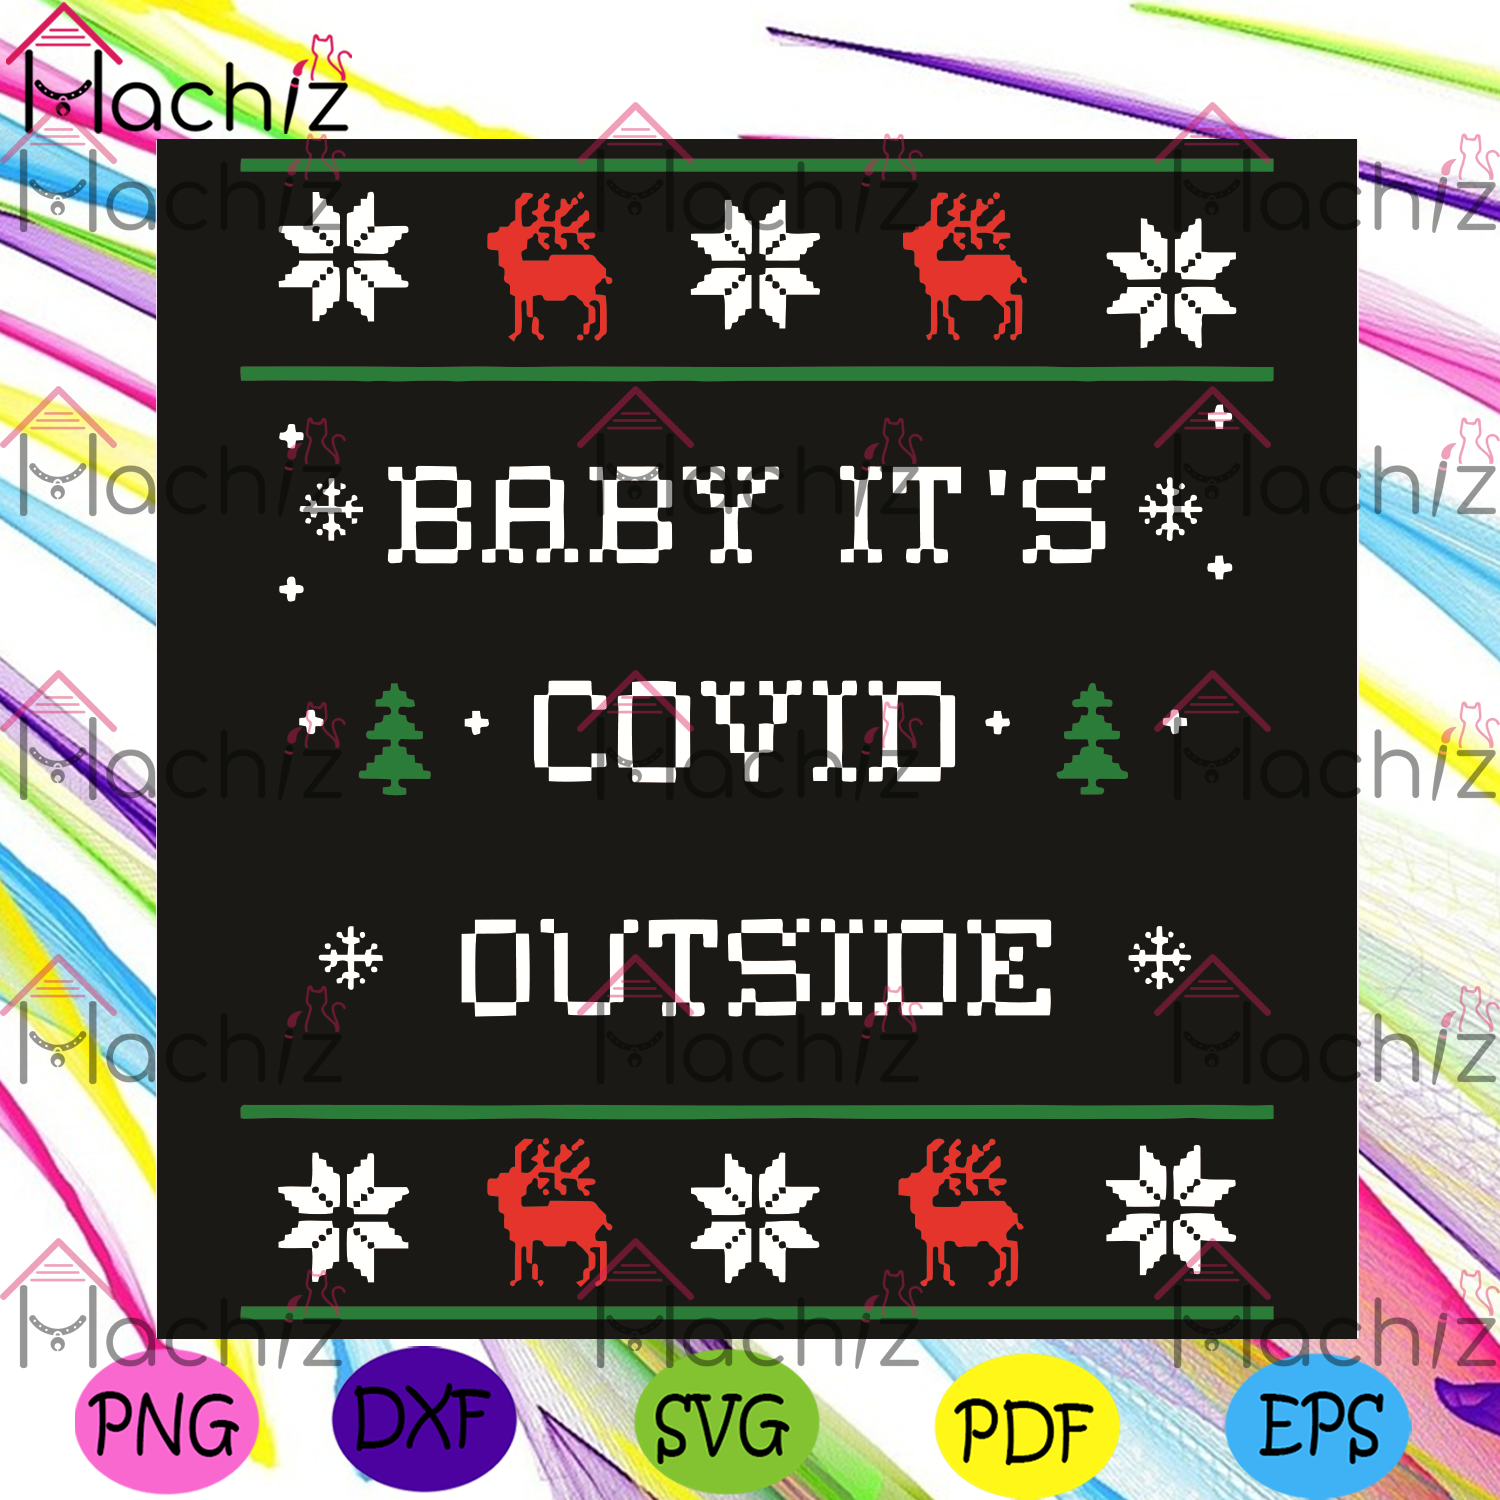 Baby it is covid outside svg, christmas svg, baby it is covid outside svg, covid outside svg, covid svg, covid 2020 svg, covid christmas svg, covid quote svg, christmas 2020 svg, xmas svg, christmas holiday svg